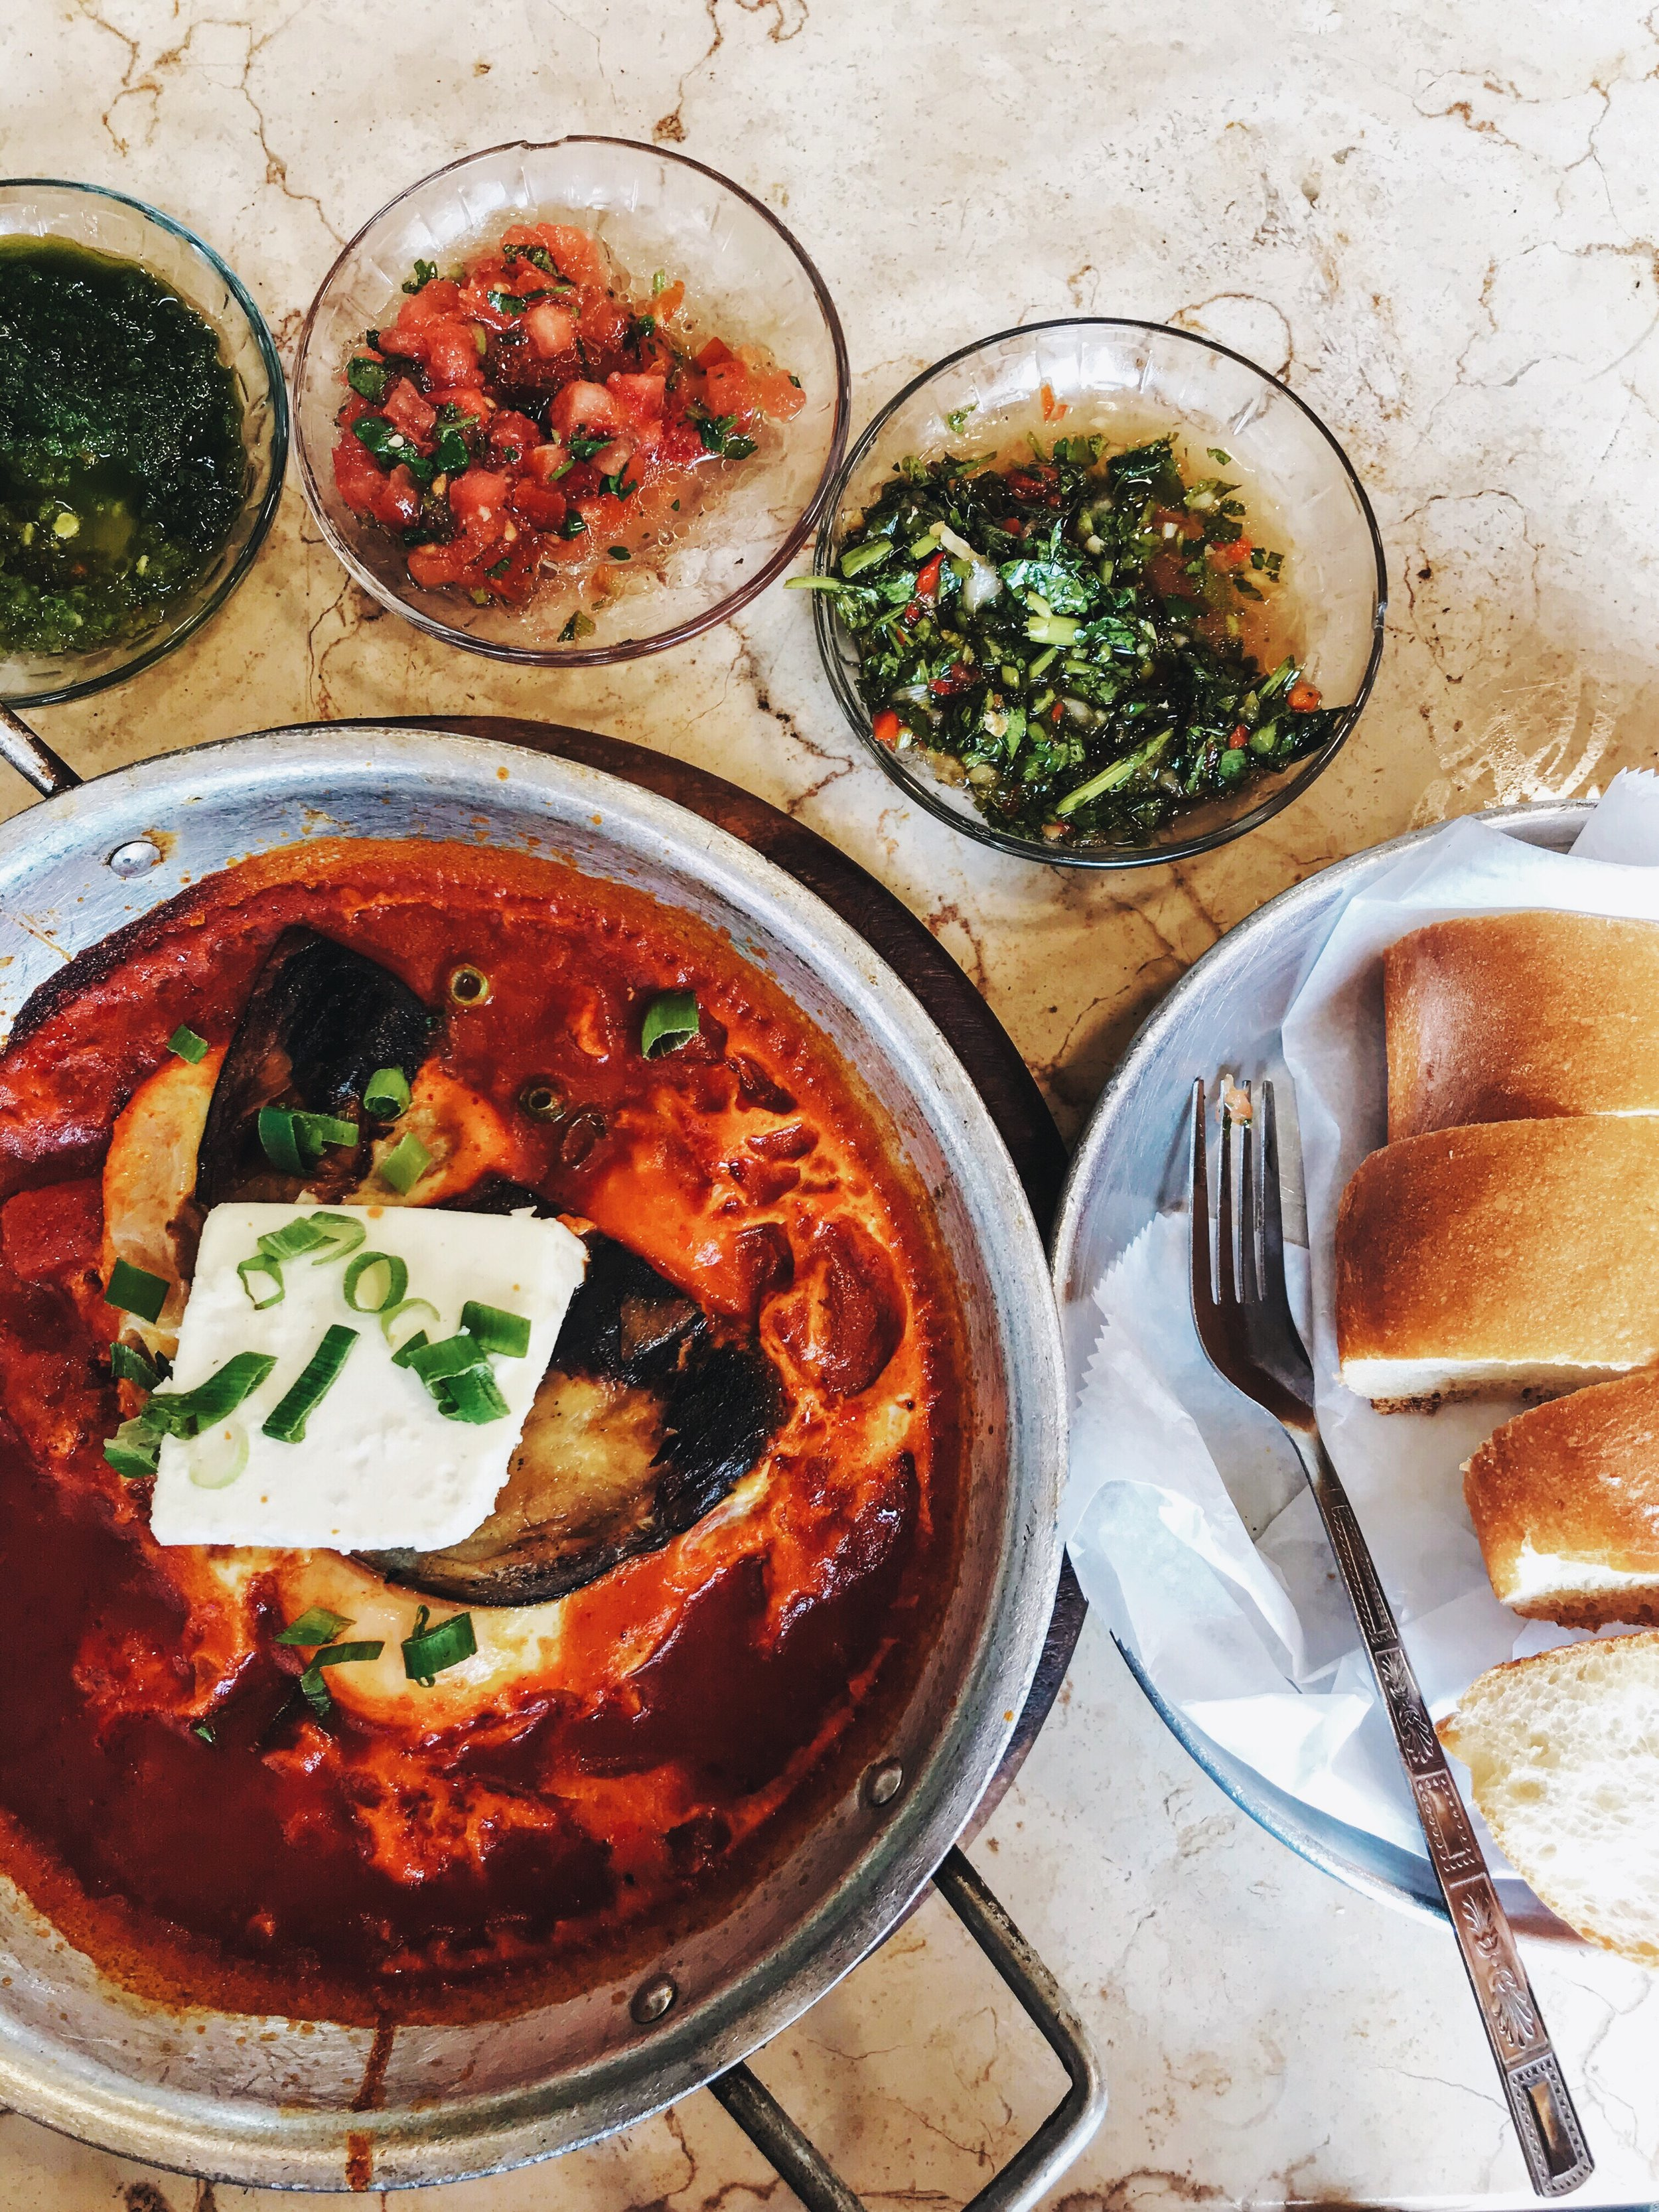 Shakshuka is a savory Middle Eastern dish comprised of baked eggs in a rich tomato sauce.